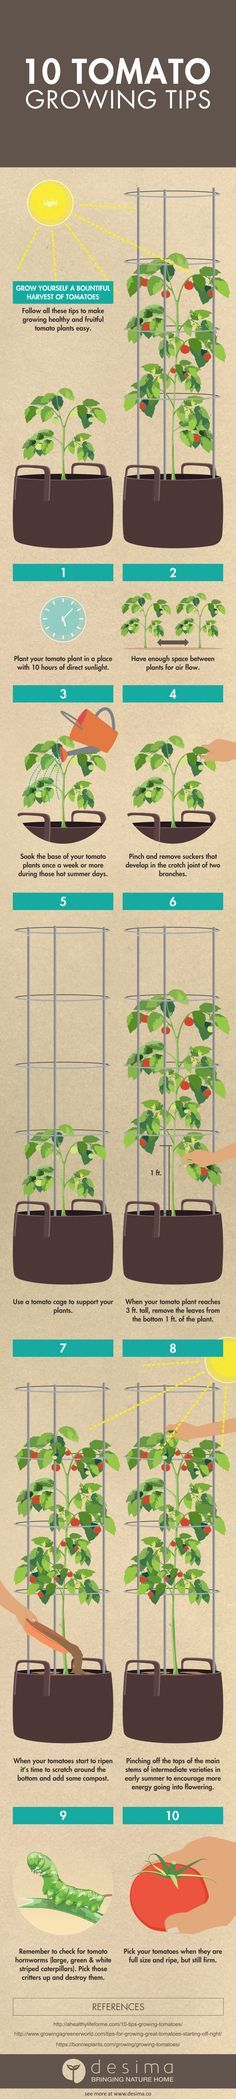 Follow all these tips to make growing healthy and fruitful tomato plants easy. 1. Plant your tomato plant in a place with 10 hours of direct sunlight. 2. Have enough space between plants for air flow. 3. Soak the base of your tomato plants once a week or more during those hot summer days. 4. Pinch and remove suckers that develop in the crotch joint of two branches. 5. Use a tomato cage to support your plants. 6. When your tomato plant reaches 3 ft. tall, remove the leaves from the ...